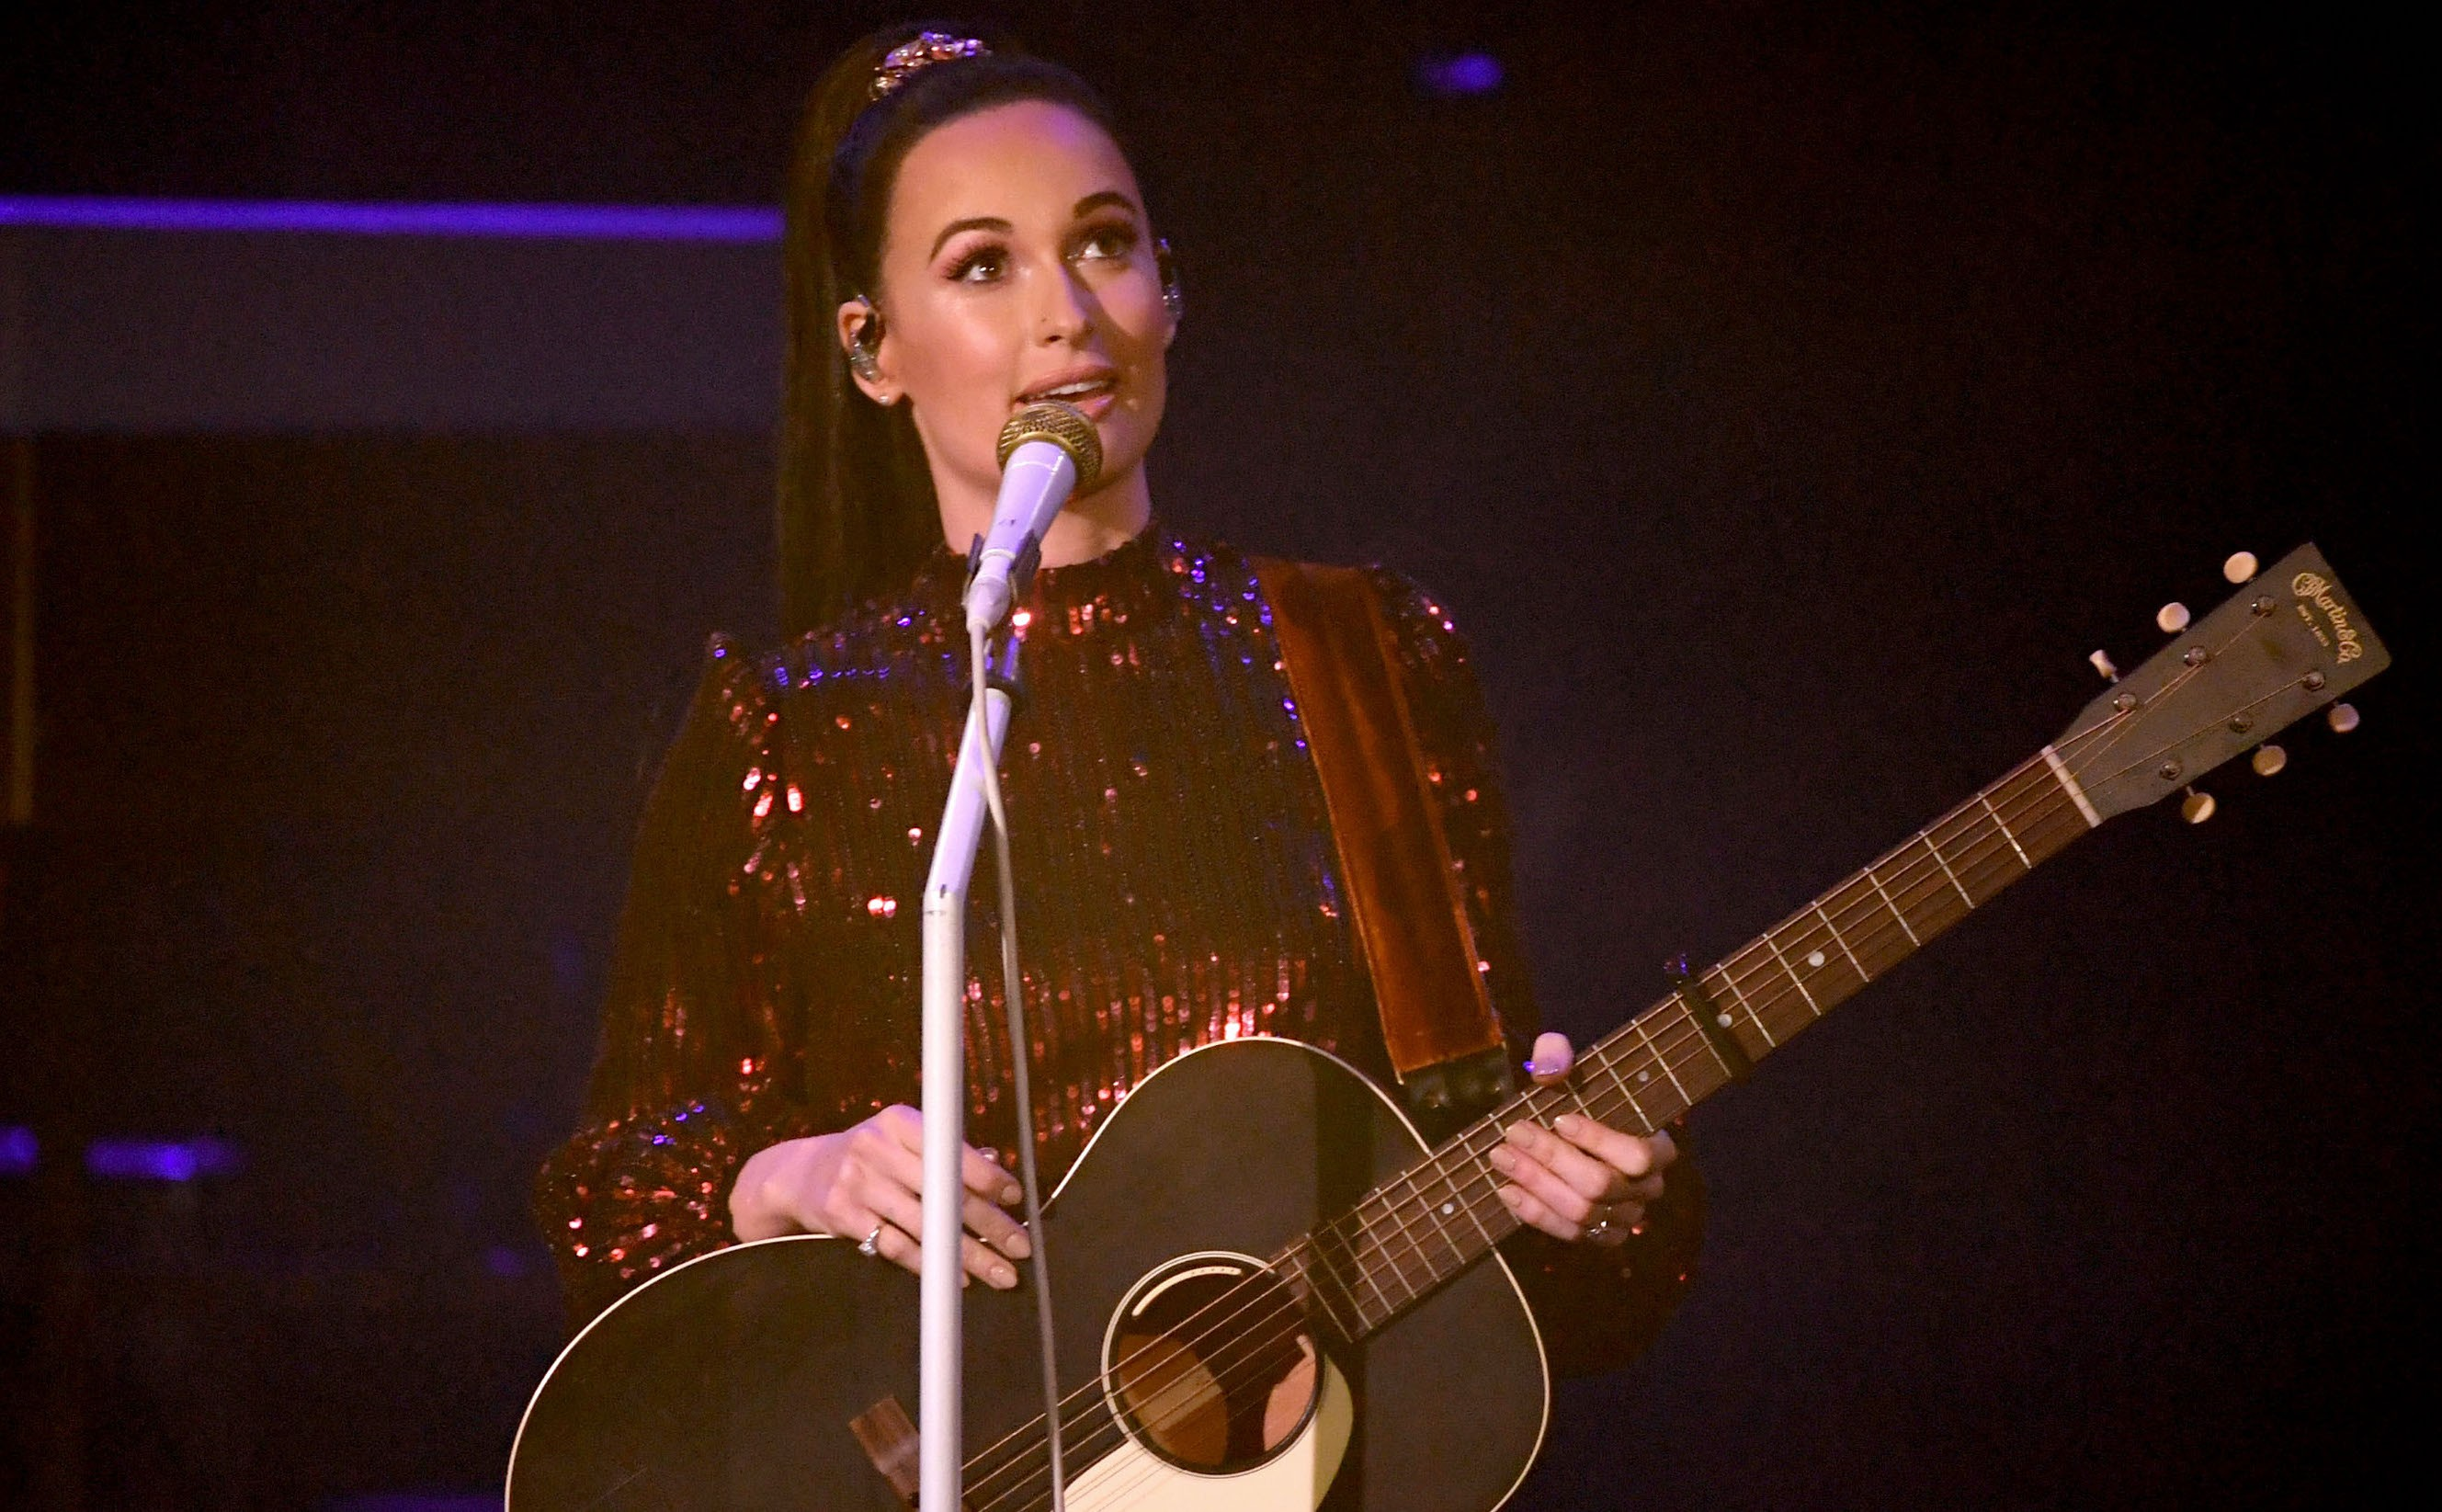 kacey-musgraves-to-present-at-the-oscars